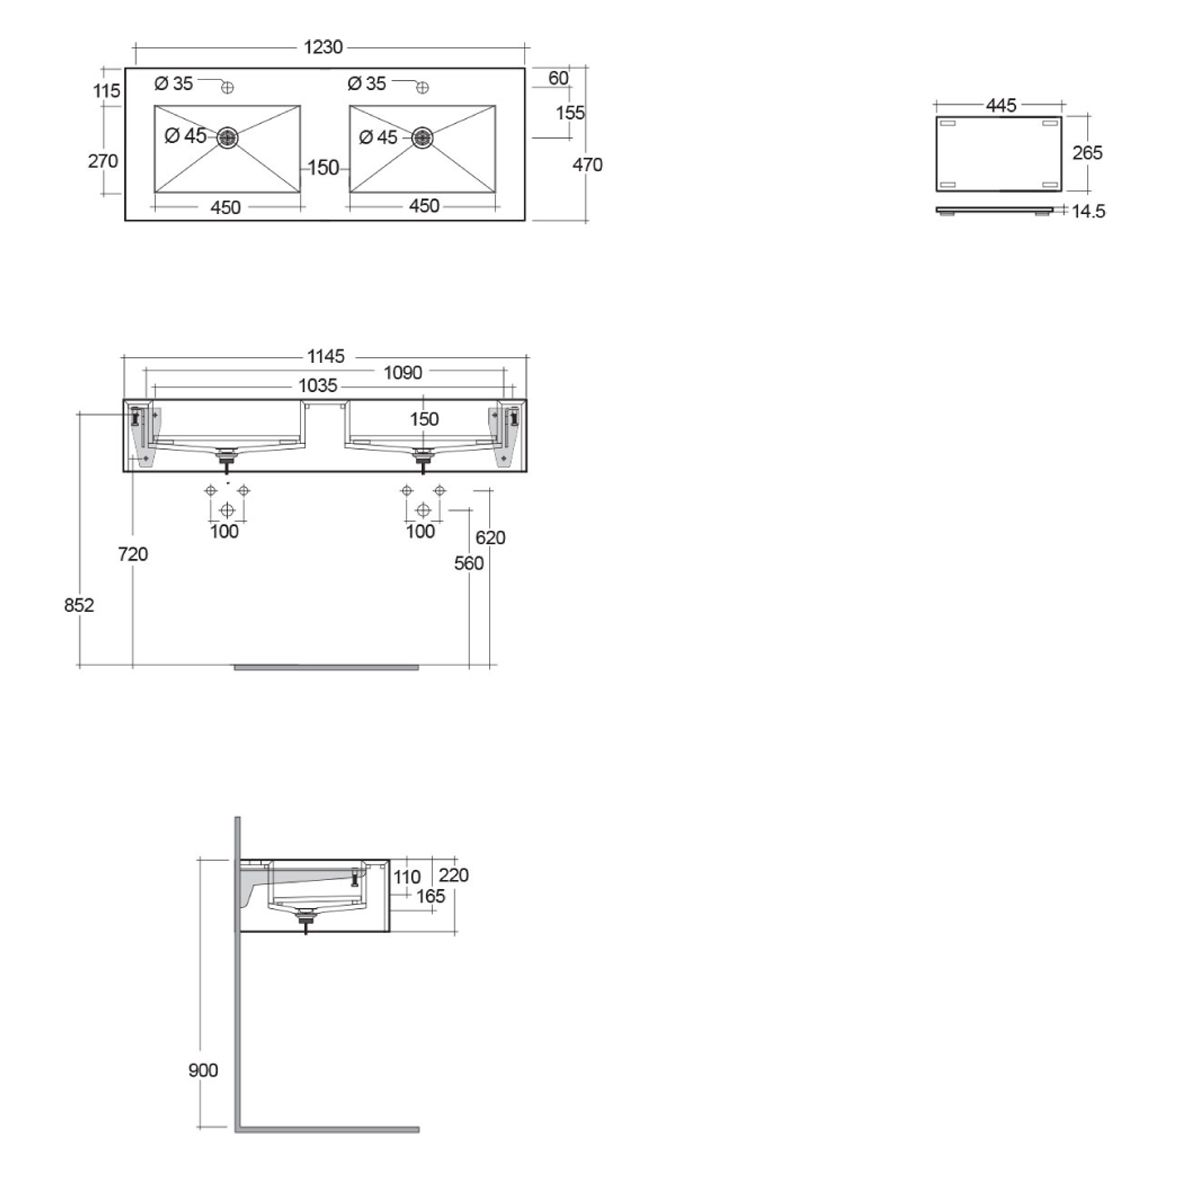 RAK Precious Behind Grey Wall Hung Counter Basin 1200mm with Brackets Measurements